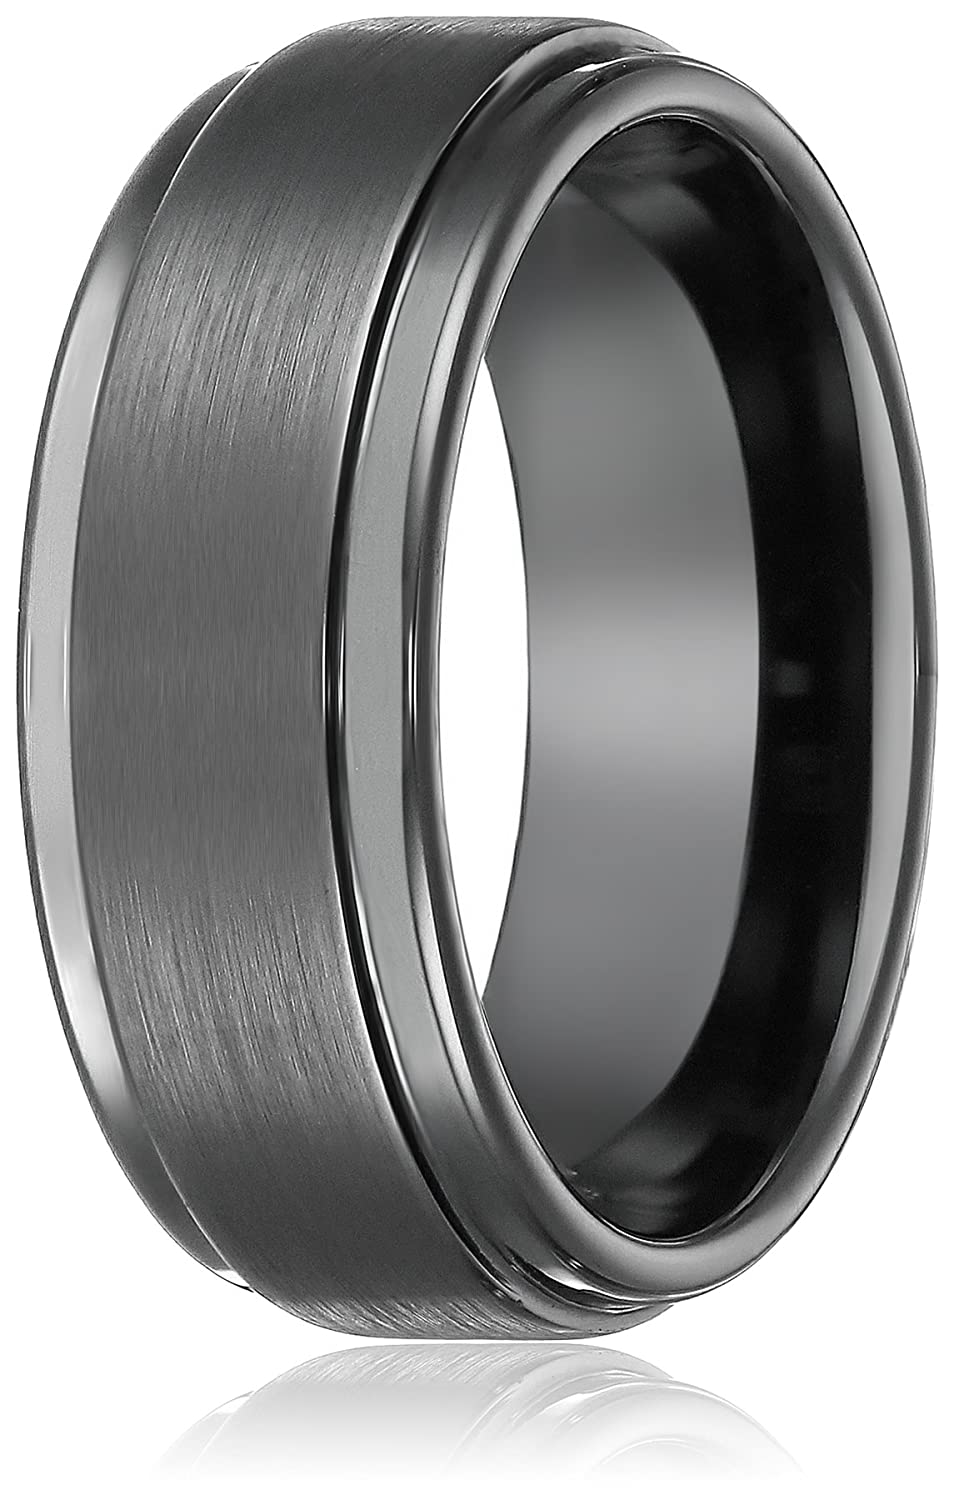 8mm black high polish tungsten carbide mens wedding band ring in comfort fit and matte finish sizes 5 to 16 amazoncom - Tungsten Mens Wedding Rings